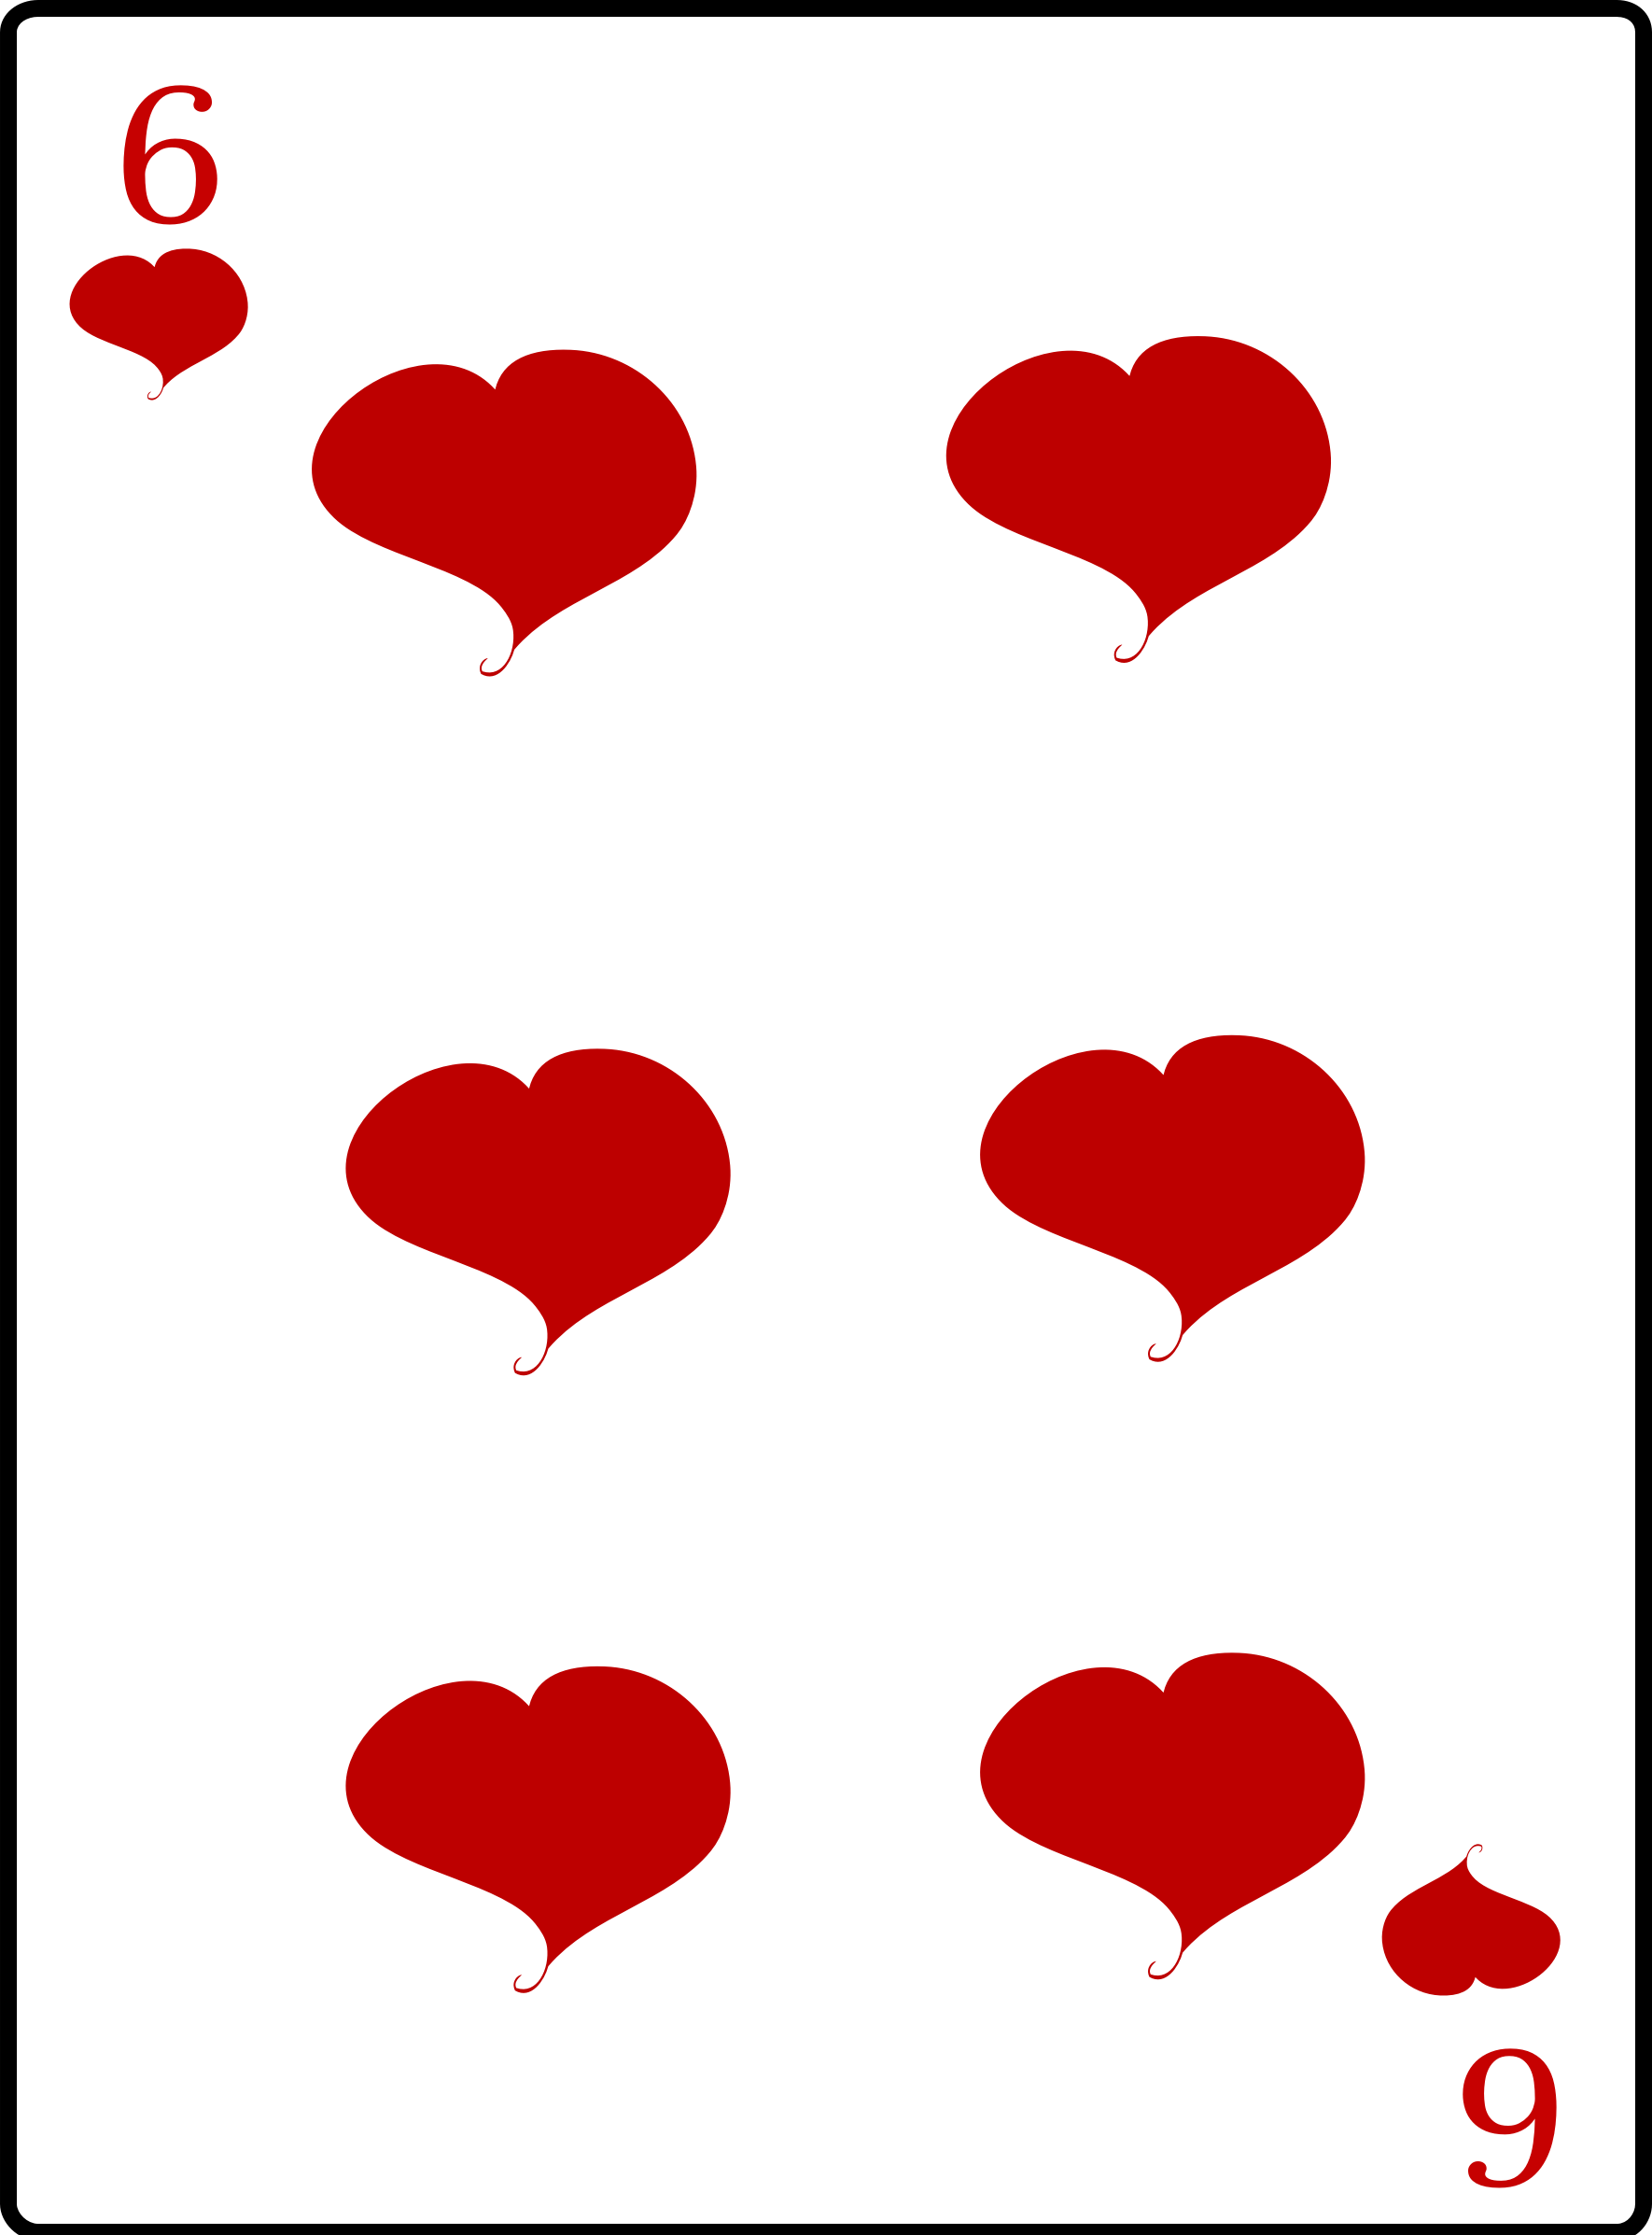 6 of Hearts by casino